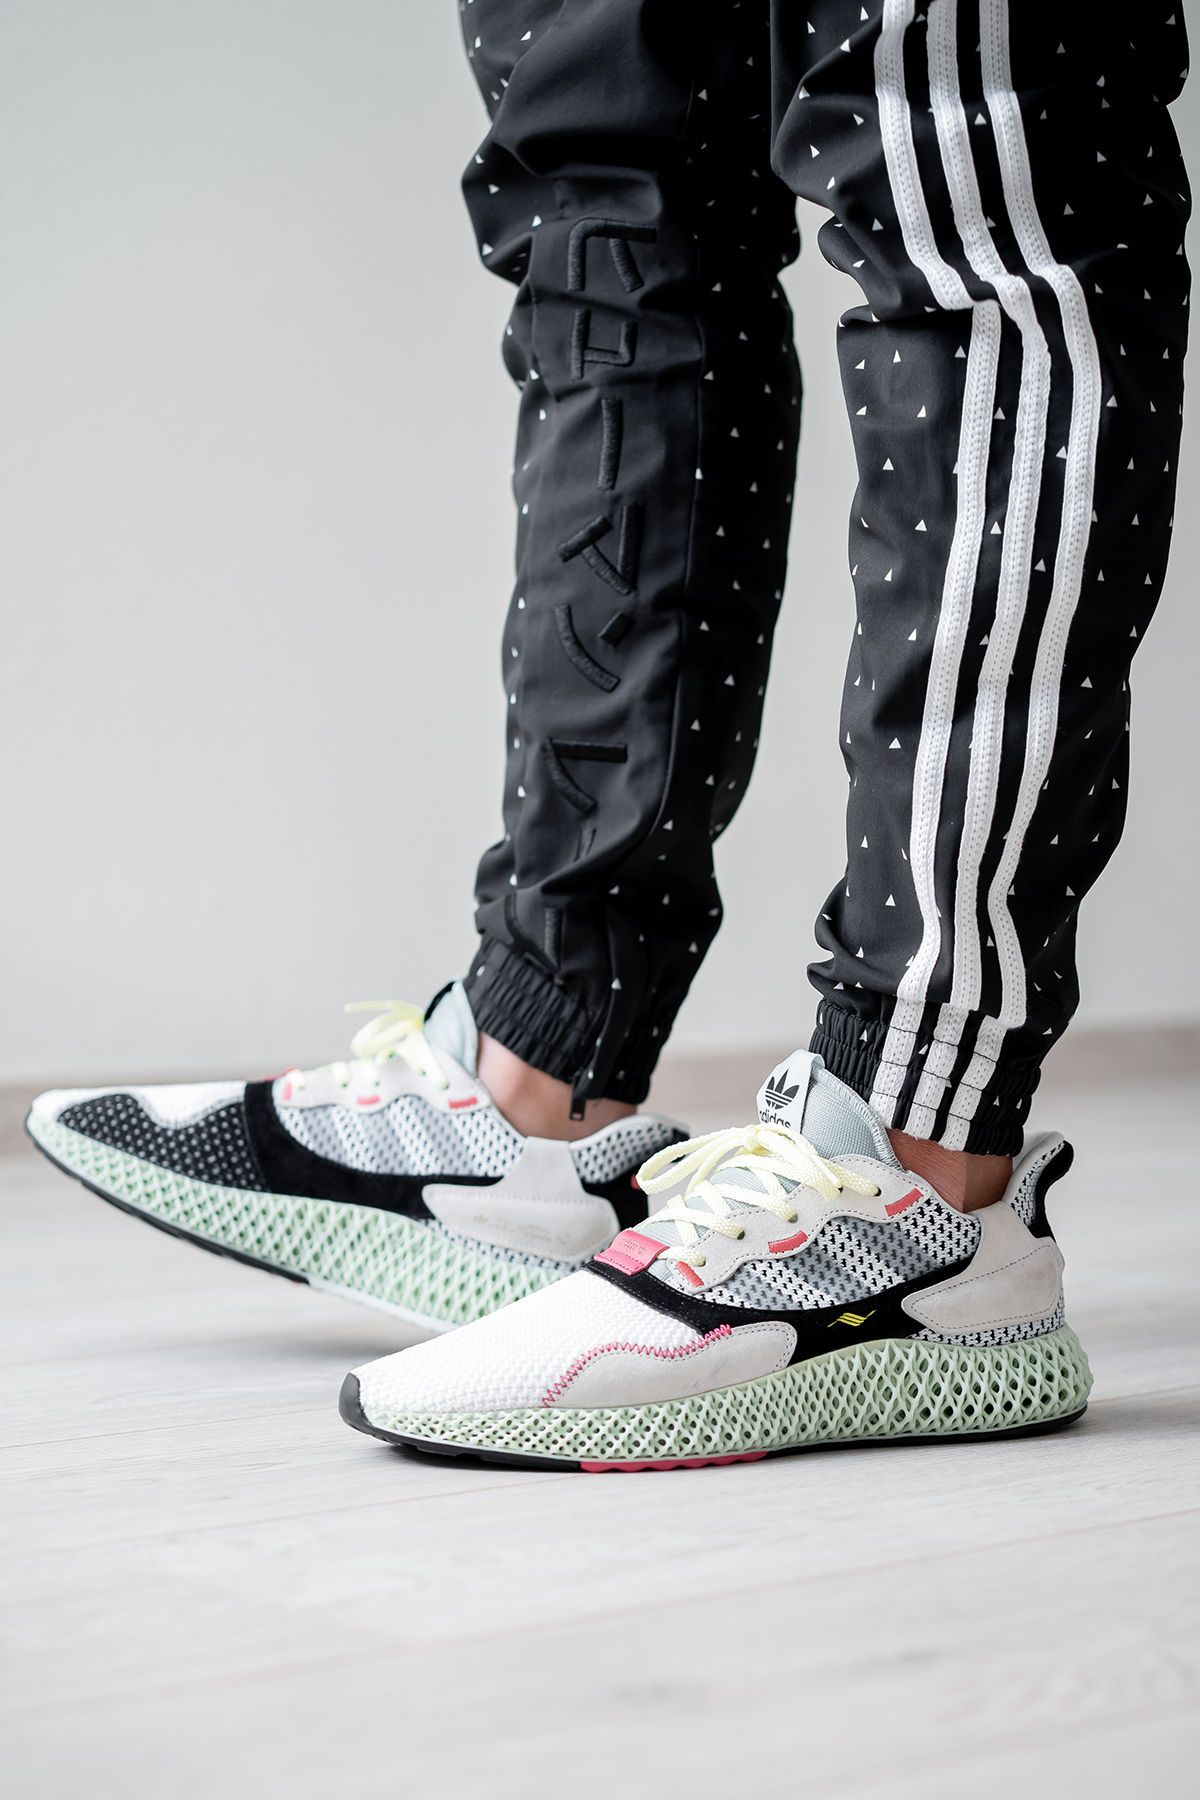 2b3d2a9aa adidas zx 4000 4d sample randy galang futurecraft fall winter 2018 black  tan beige white mesh woven cream B42203 FTWR WHT GREY TWO LINEN GREEN adidas  zx ...